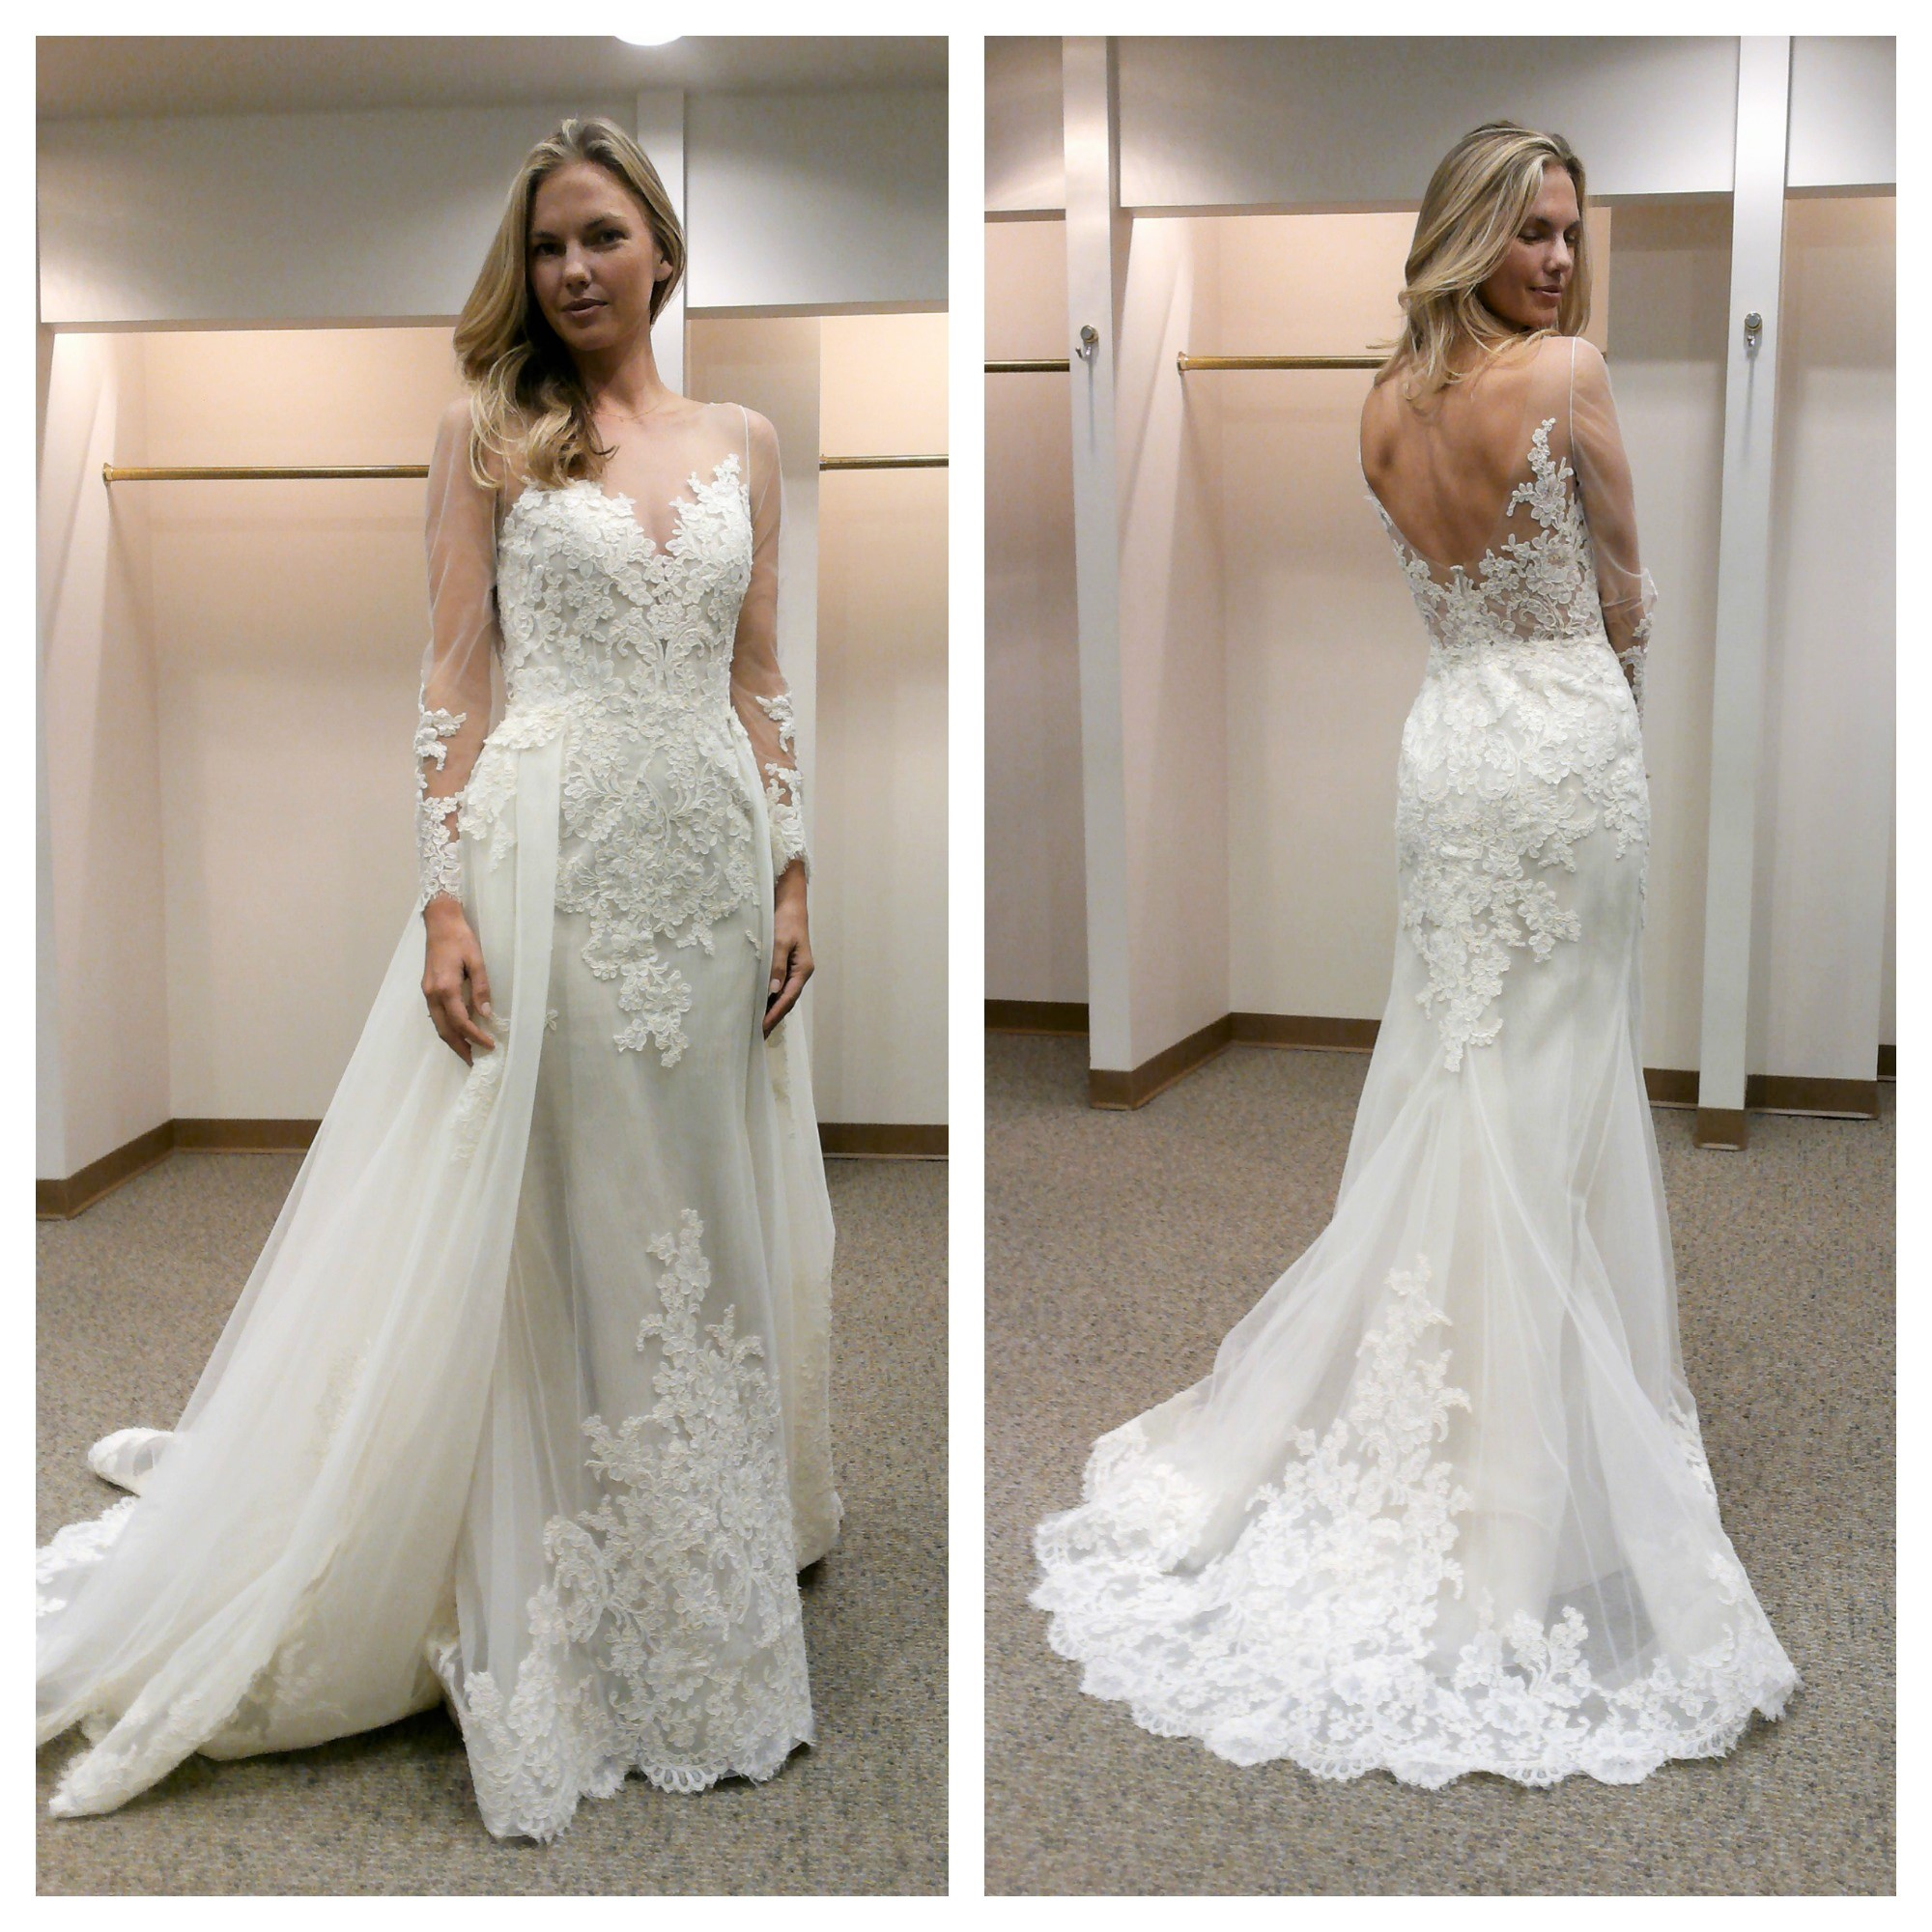 annalise goes to new york bridal market get the latest bridal trends and styles wedding dress skirt Left Liancarlo with detachable skirt Right Liancarlo without skirt